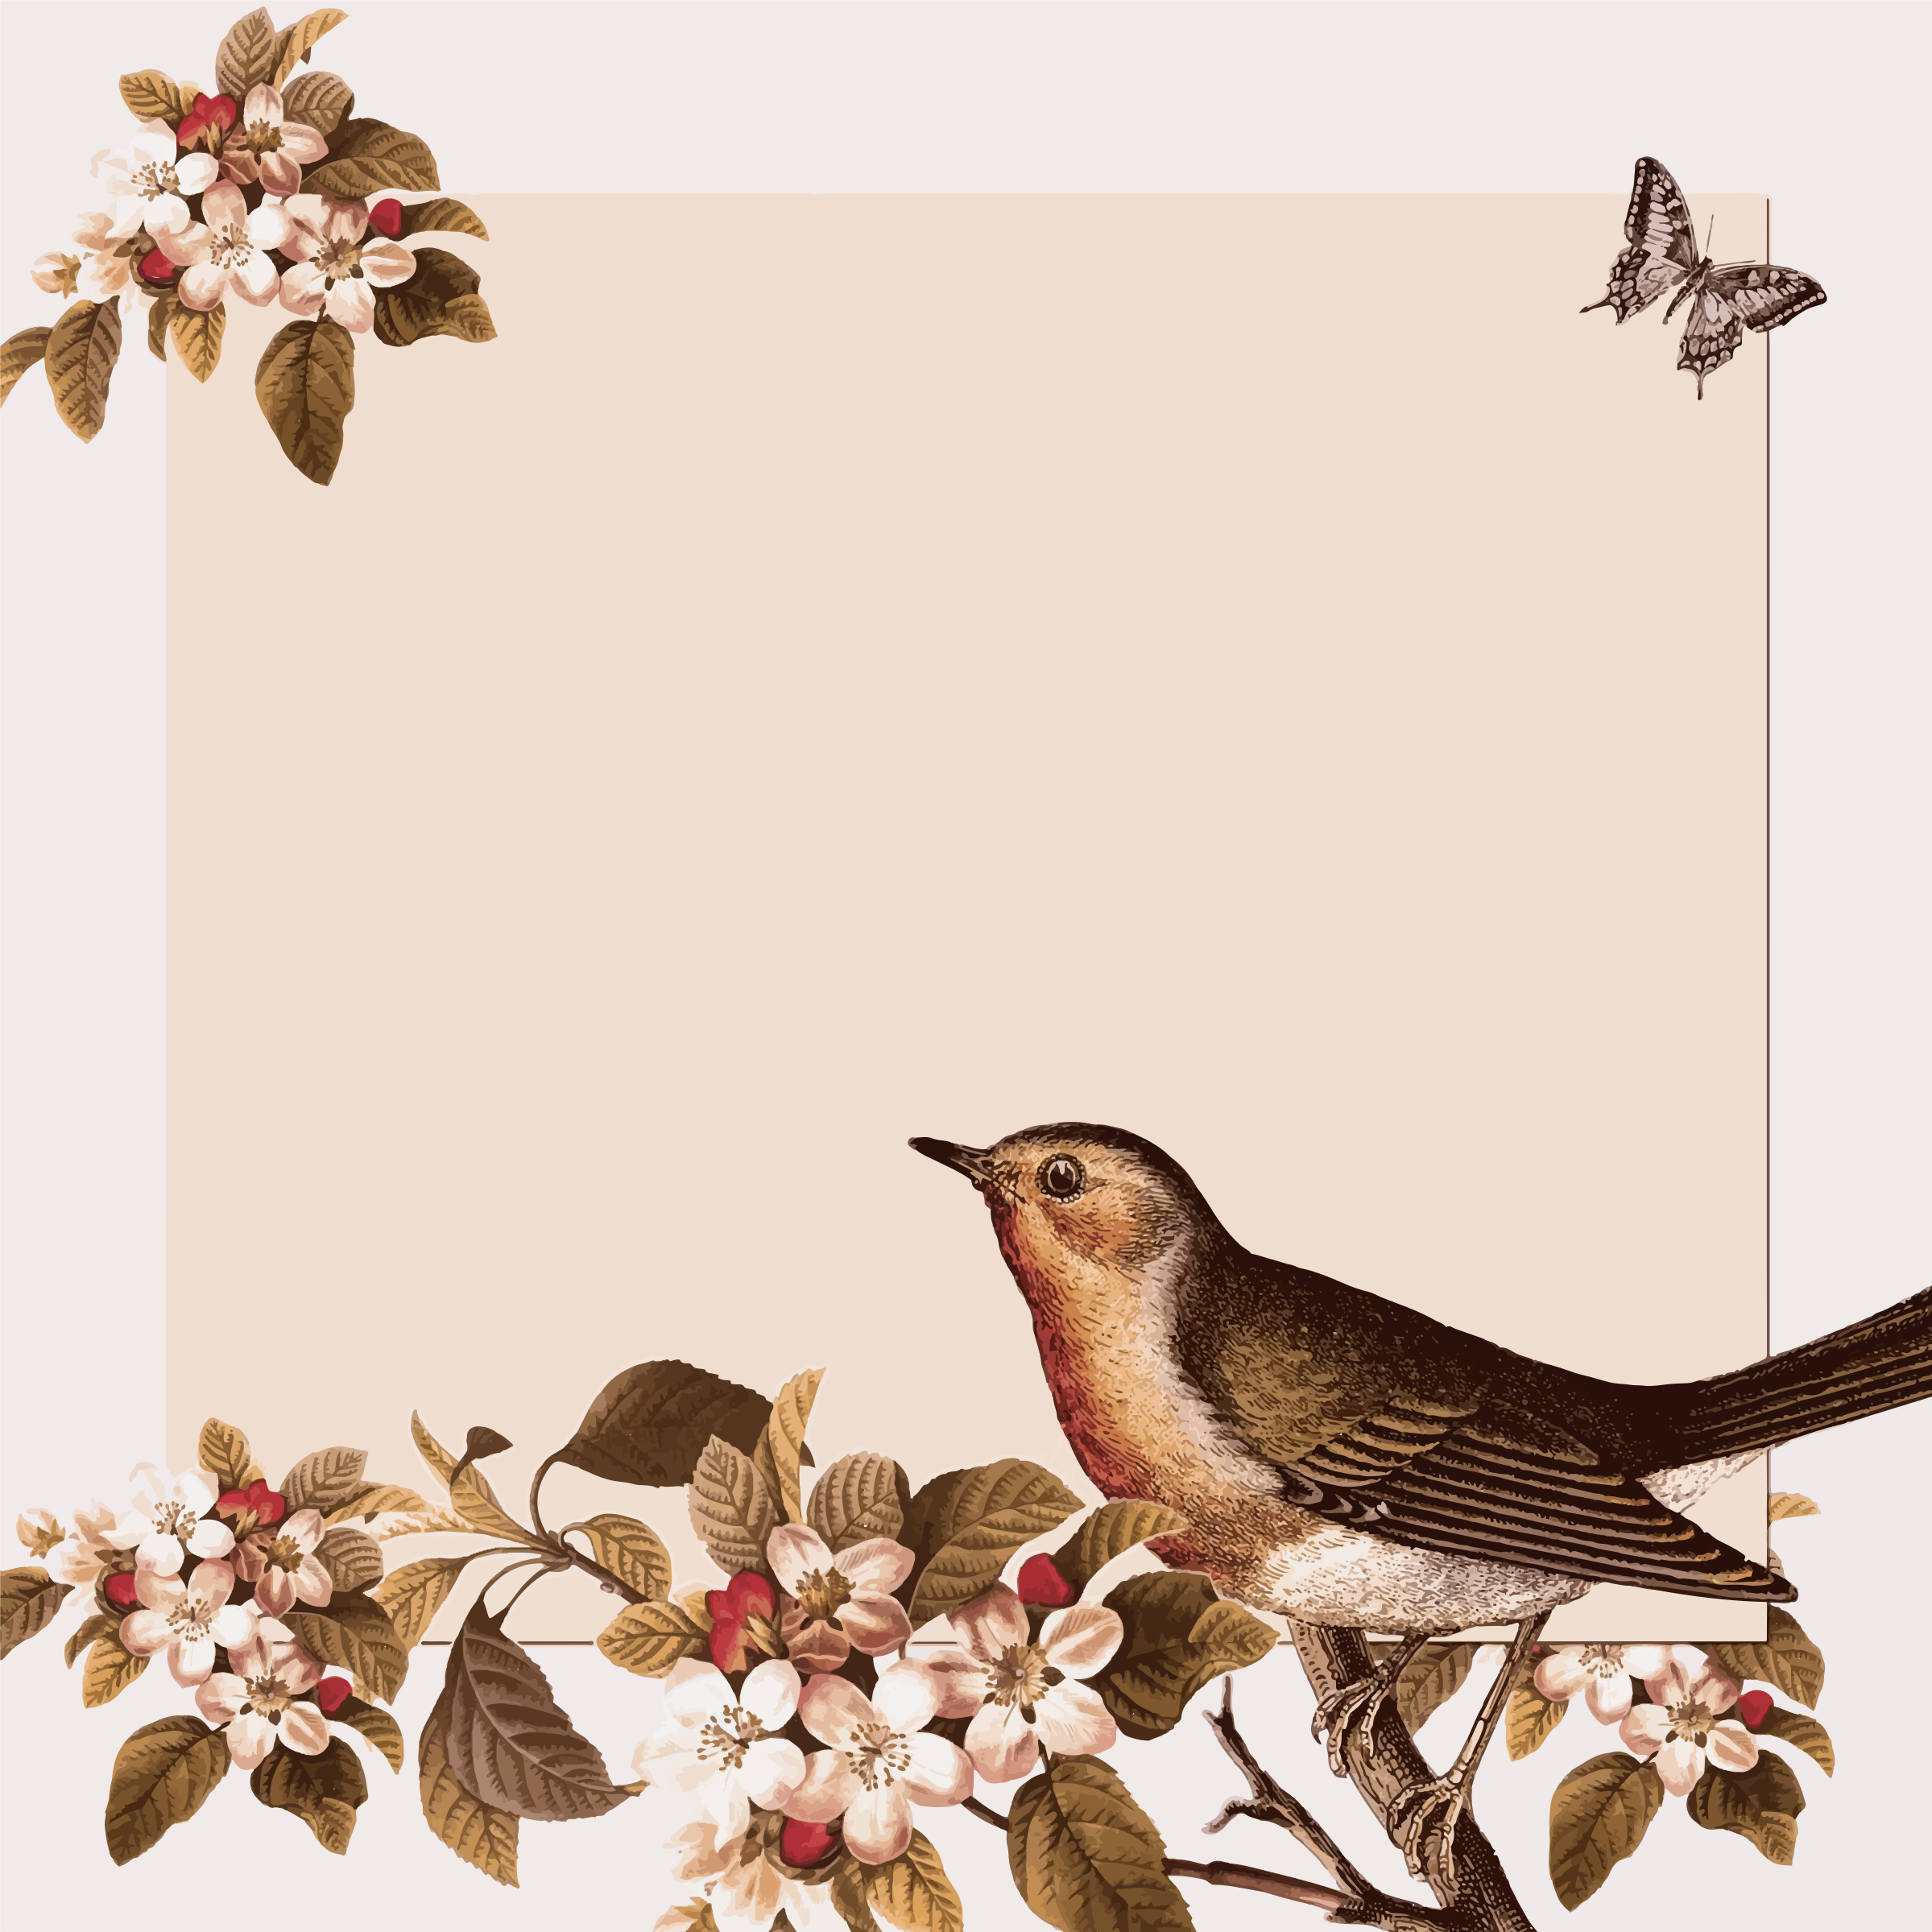 clipart vintage bird and floral background